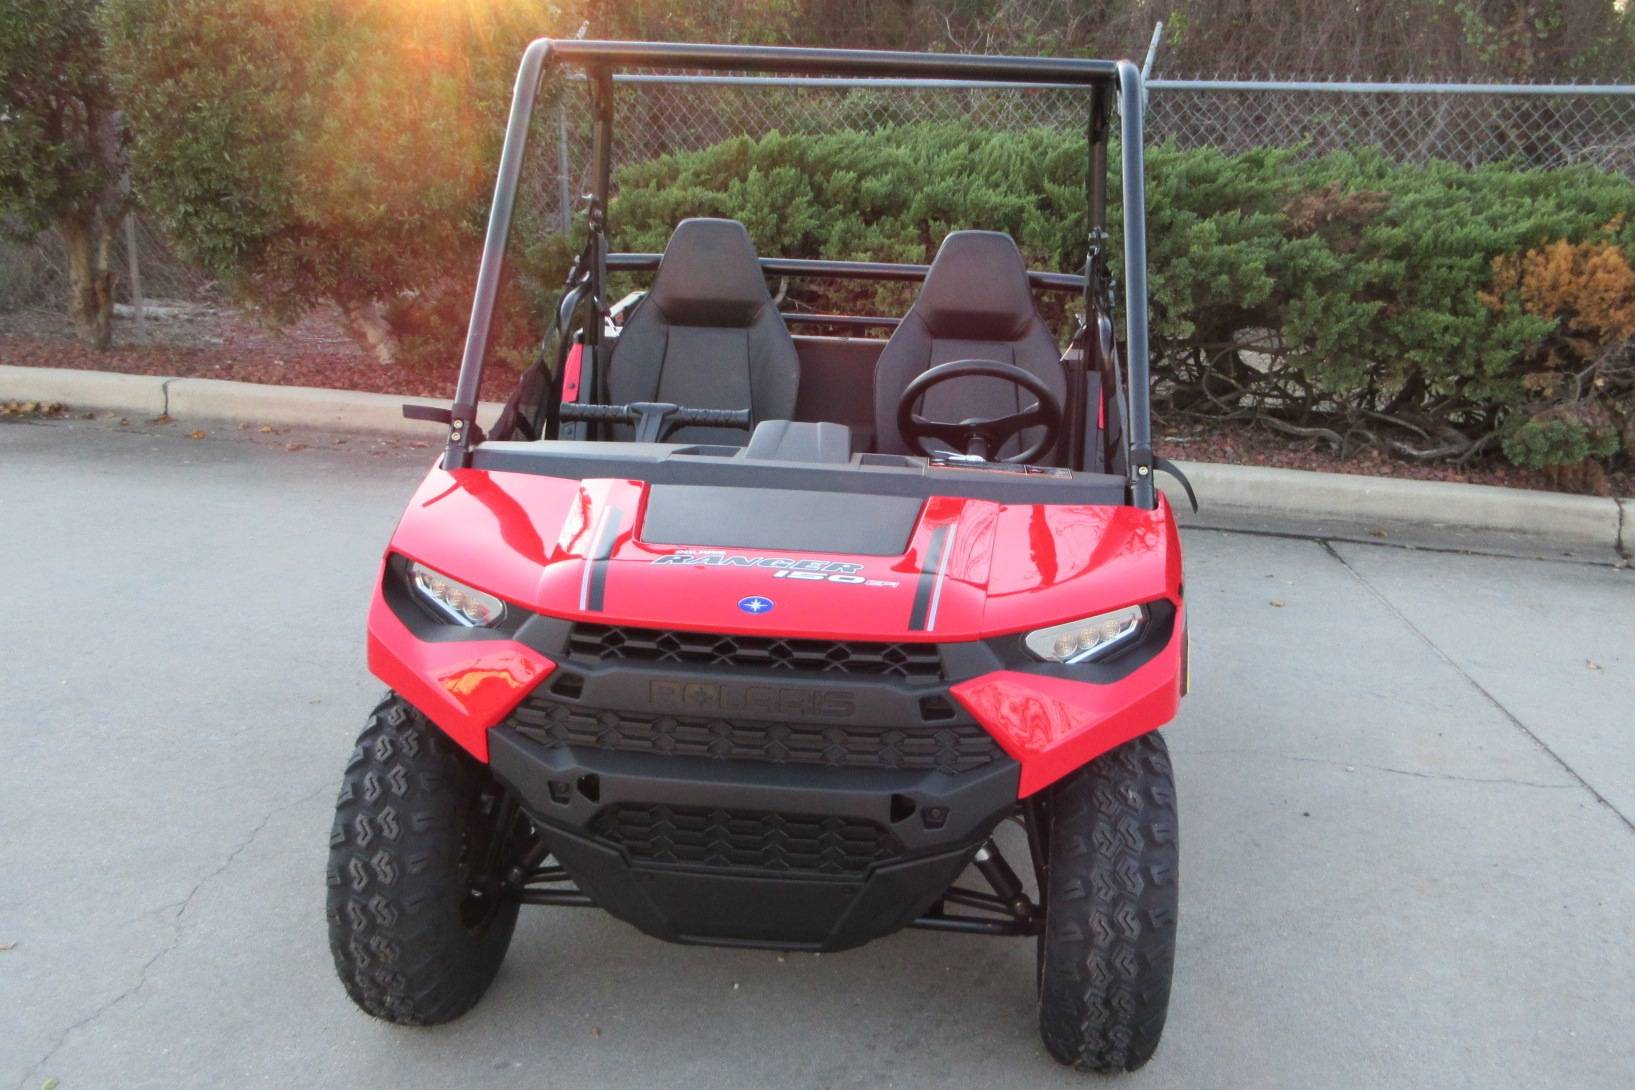 2019 Polaris Ranger 150 EFI in Sumter, South Carolina - Photo 4